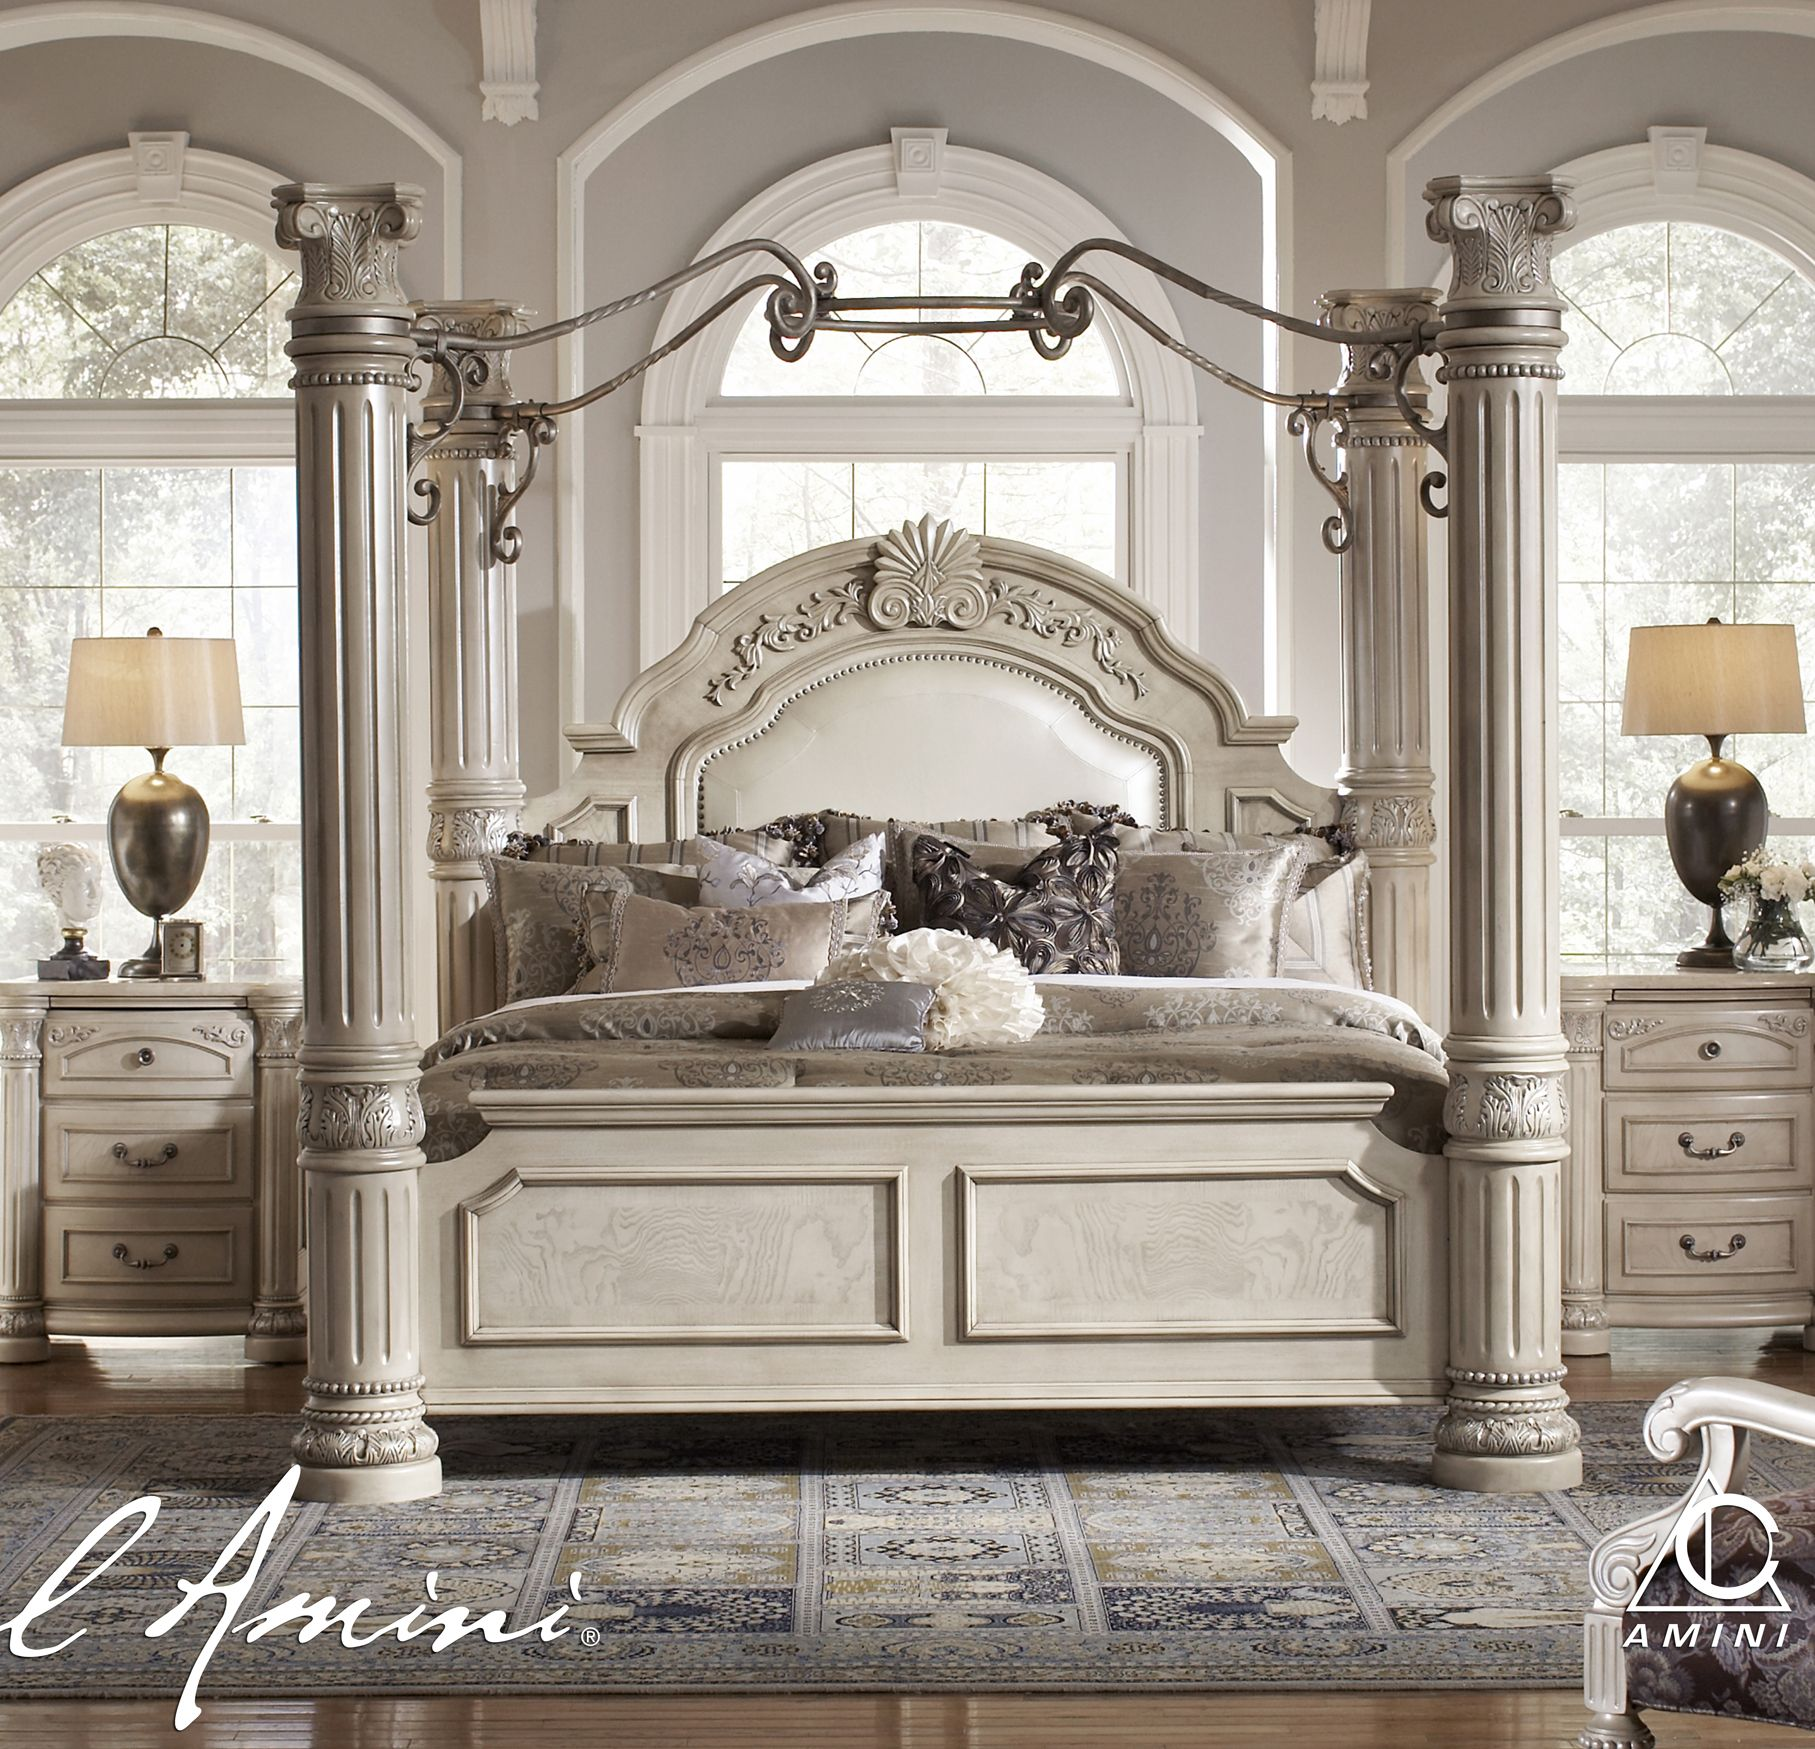 Sleep Like A Queen Canopy Bedroom Sets Luxurious Bedrooms Luxury Bedroom Sets